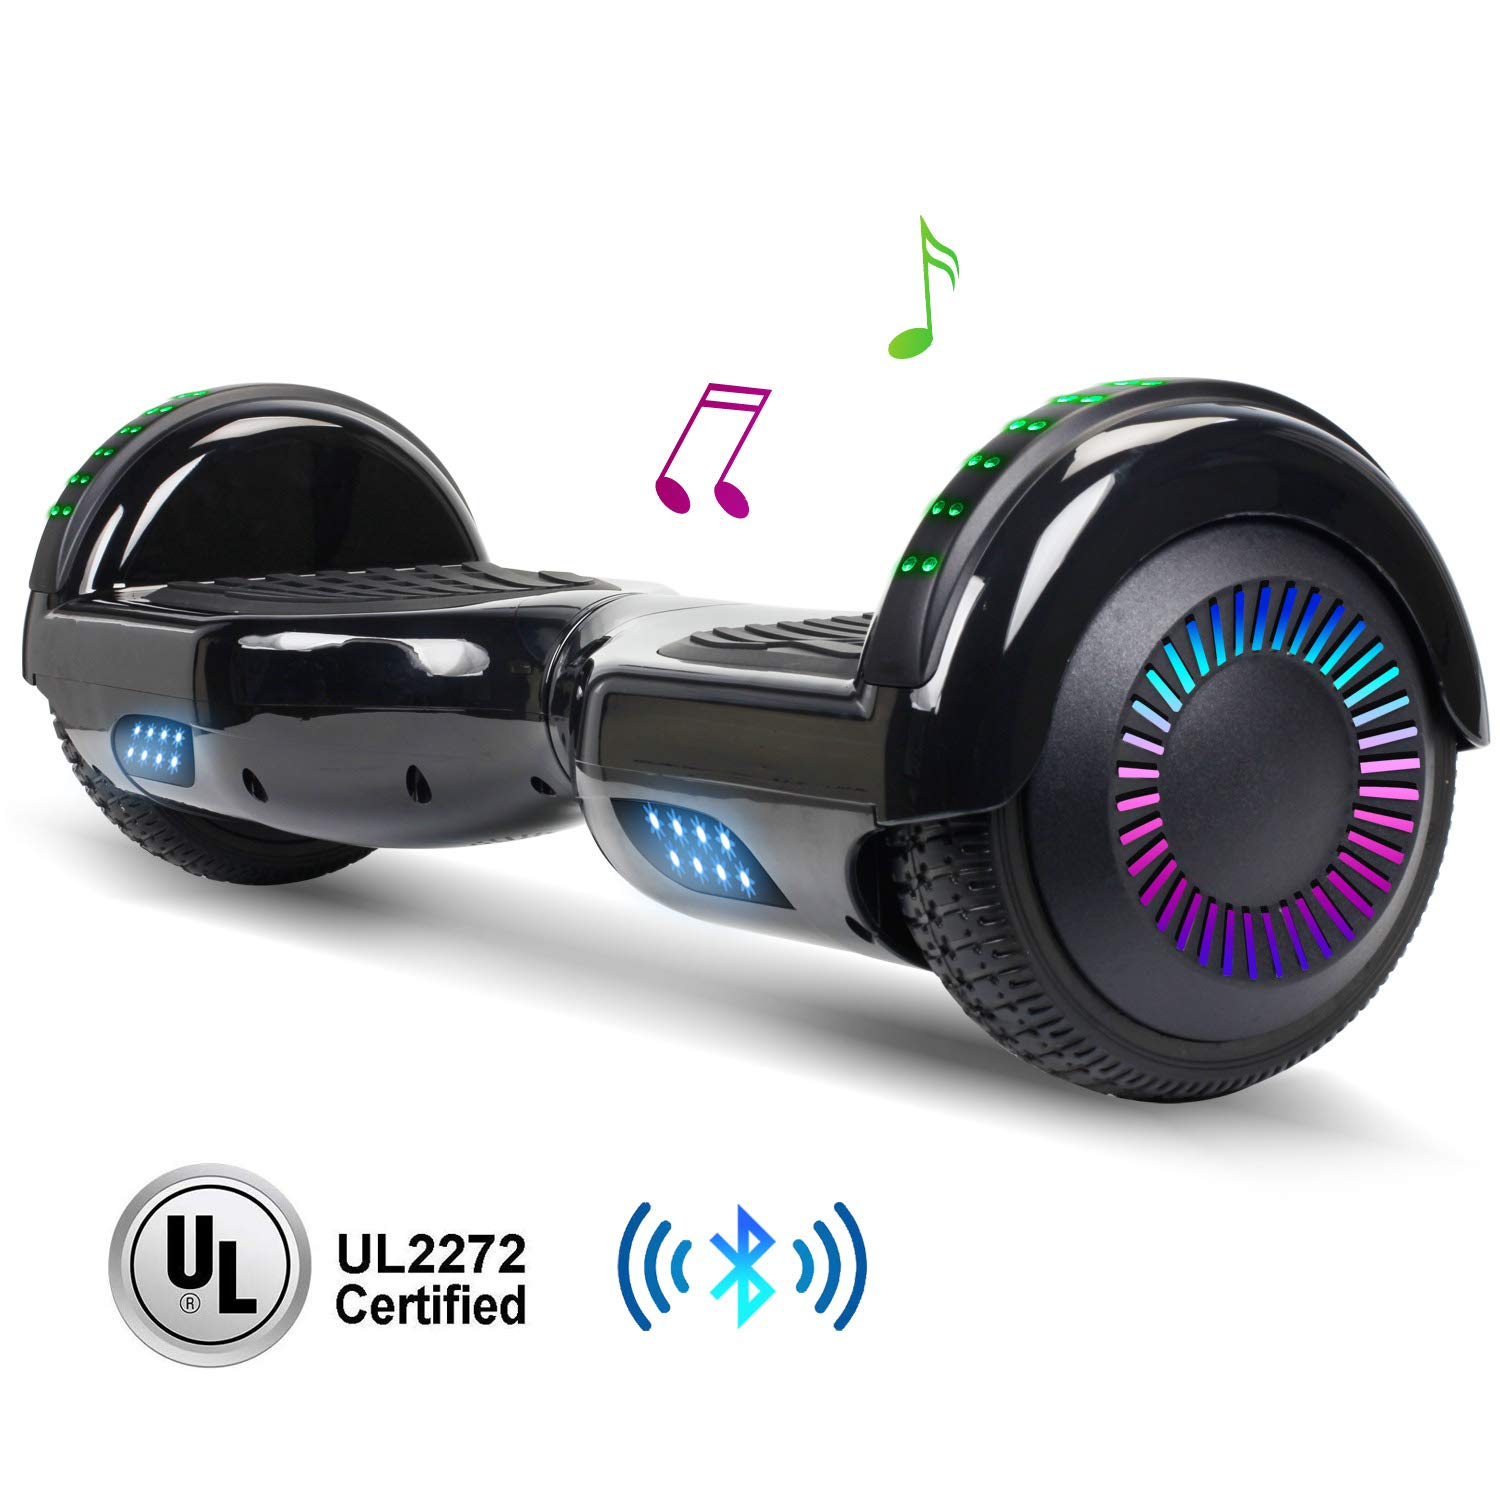 Jolege Hoverboard Self Balancing Scooters for Kids